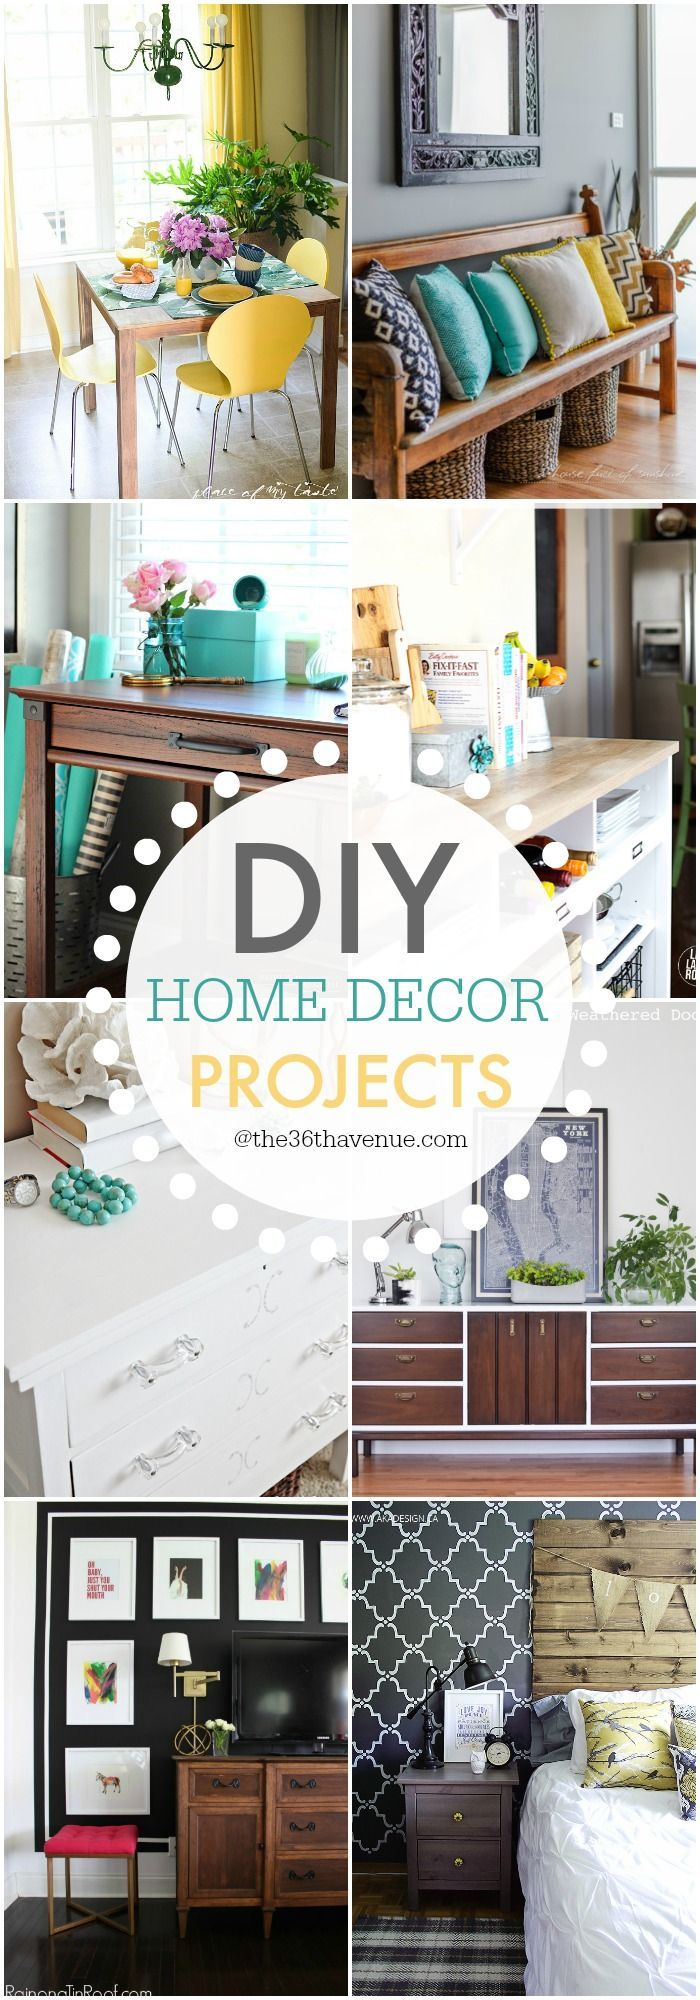 332 best DIY Home Decor images on Pinterest | Home ideas, Living ...